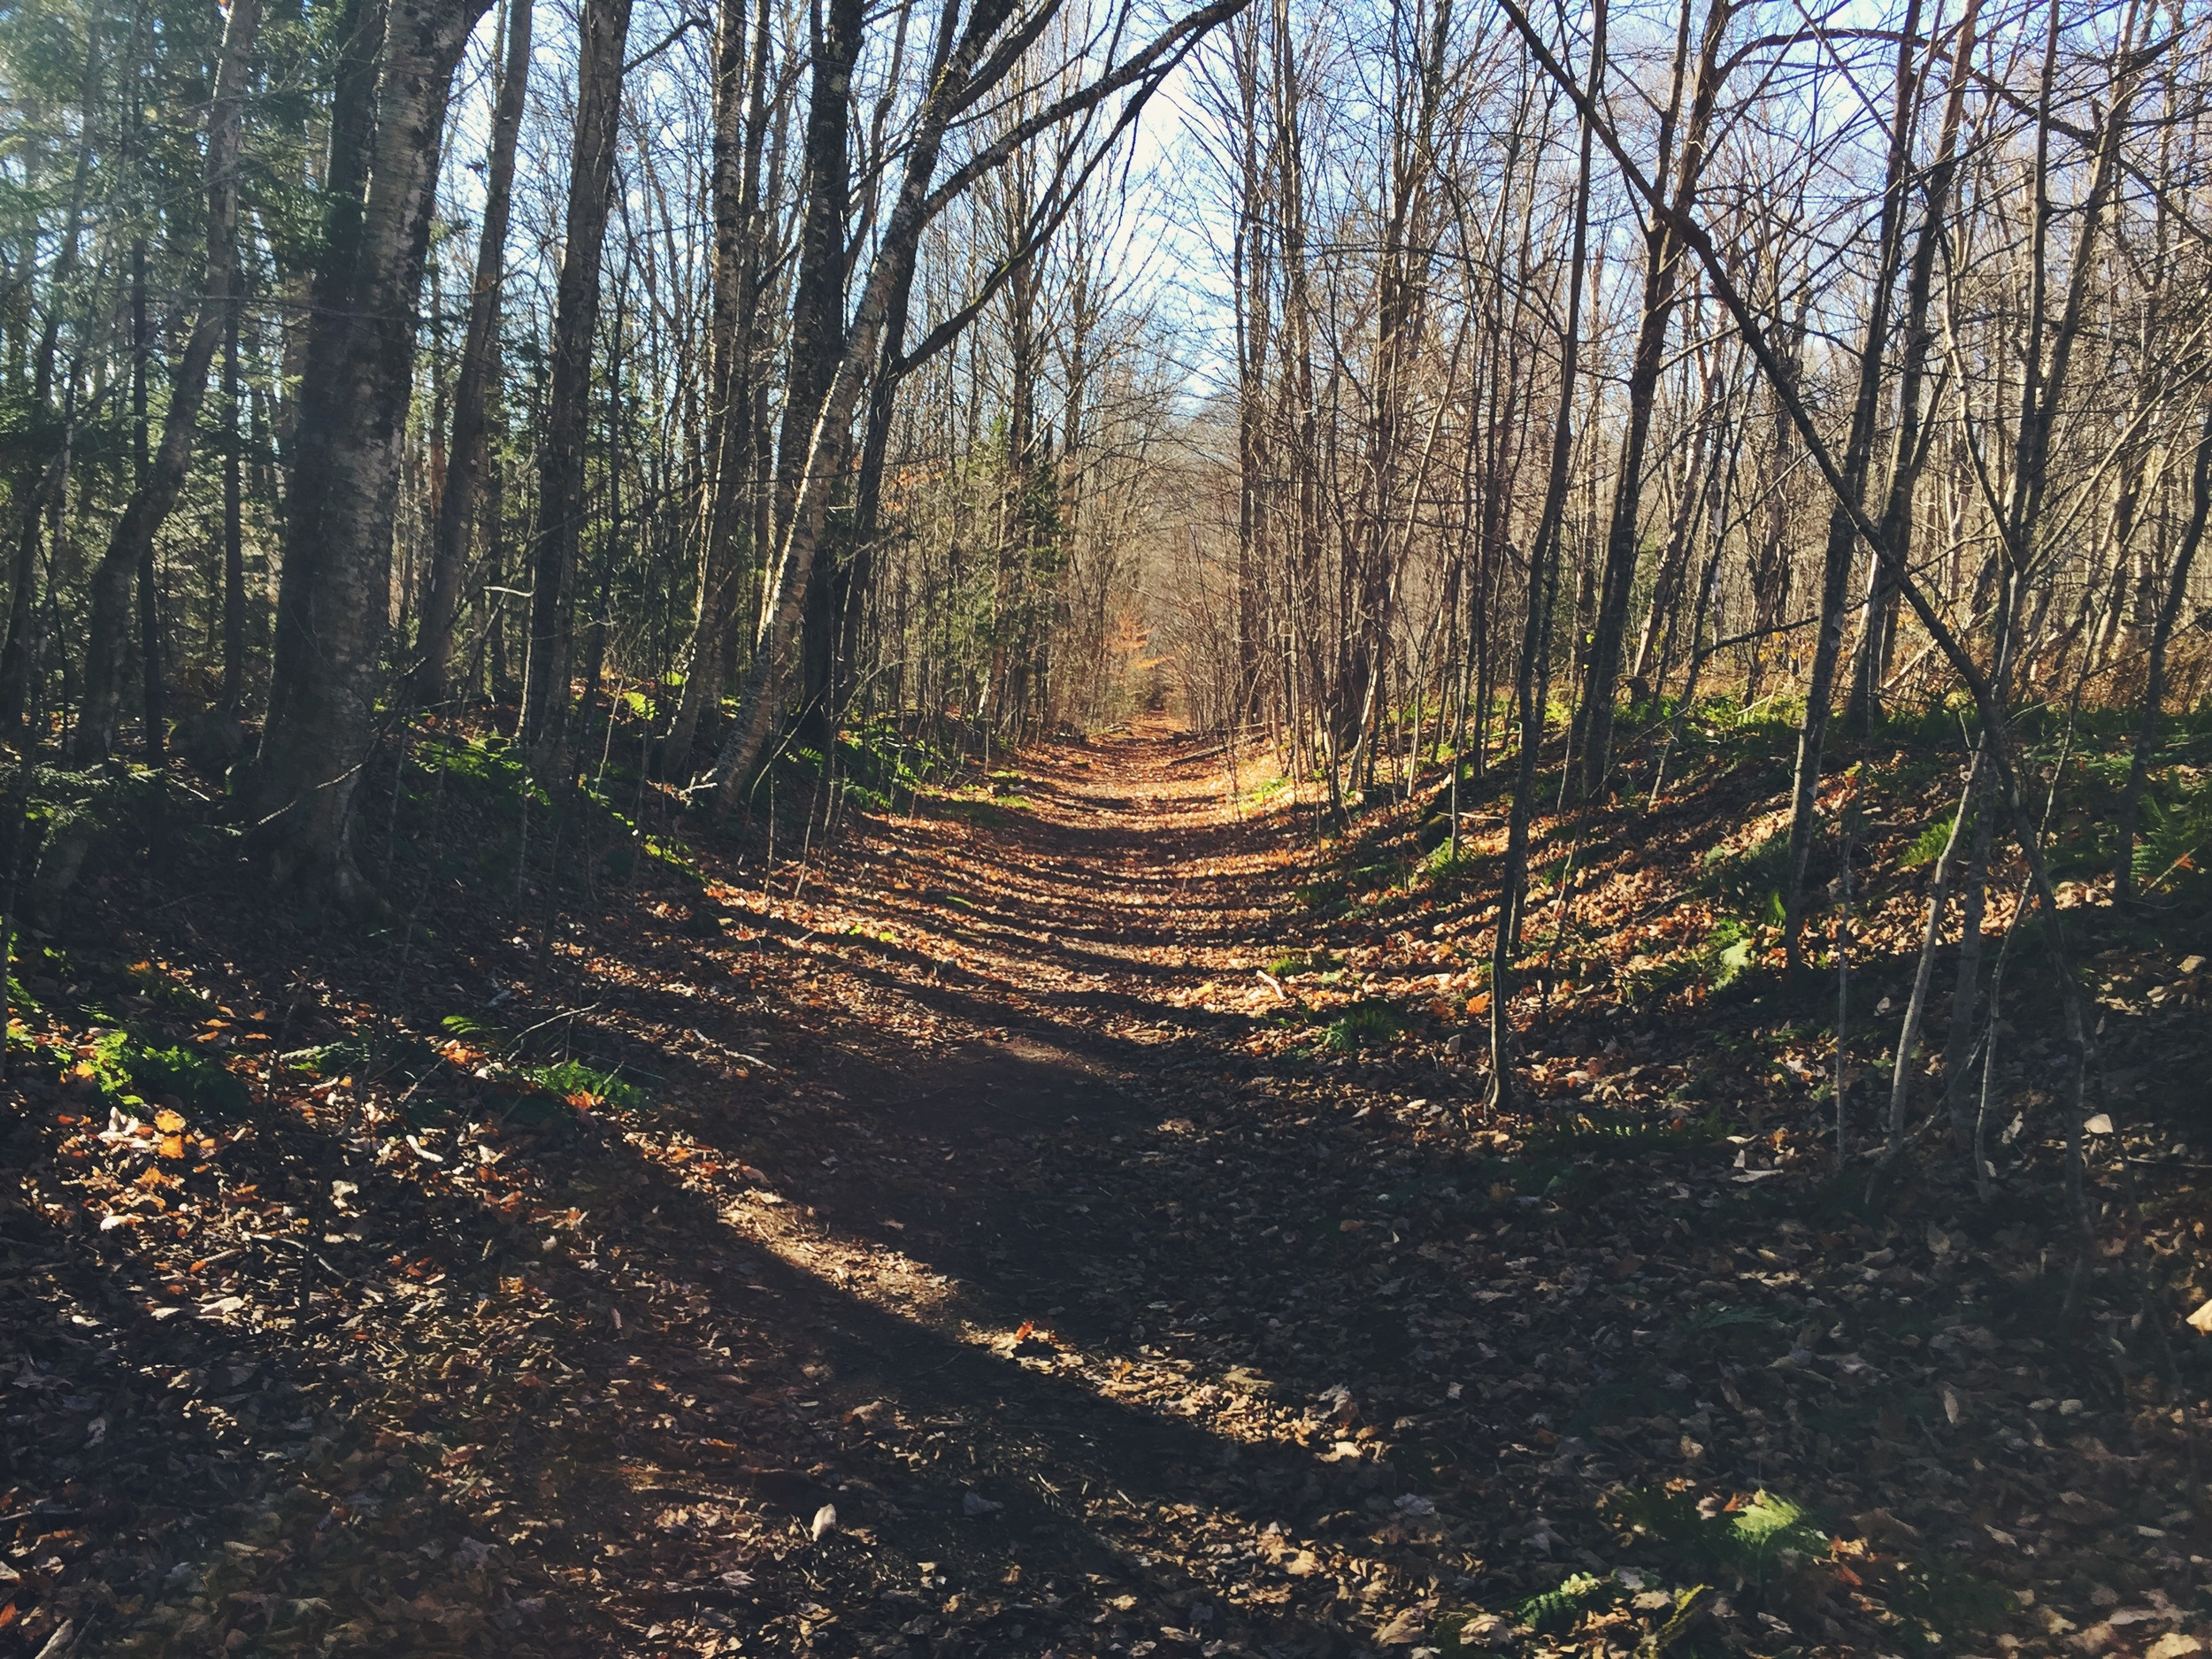 Walking the old logging railroad is a wonderful care-free way to finish this beautiful hike.